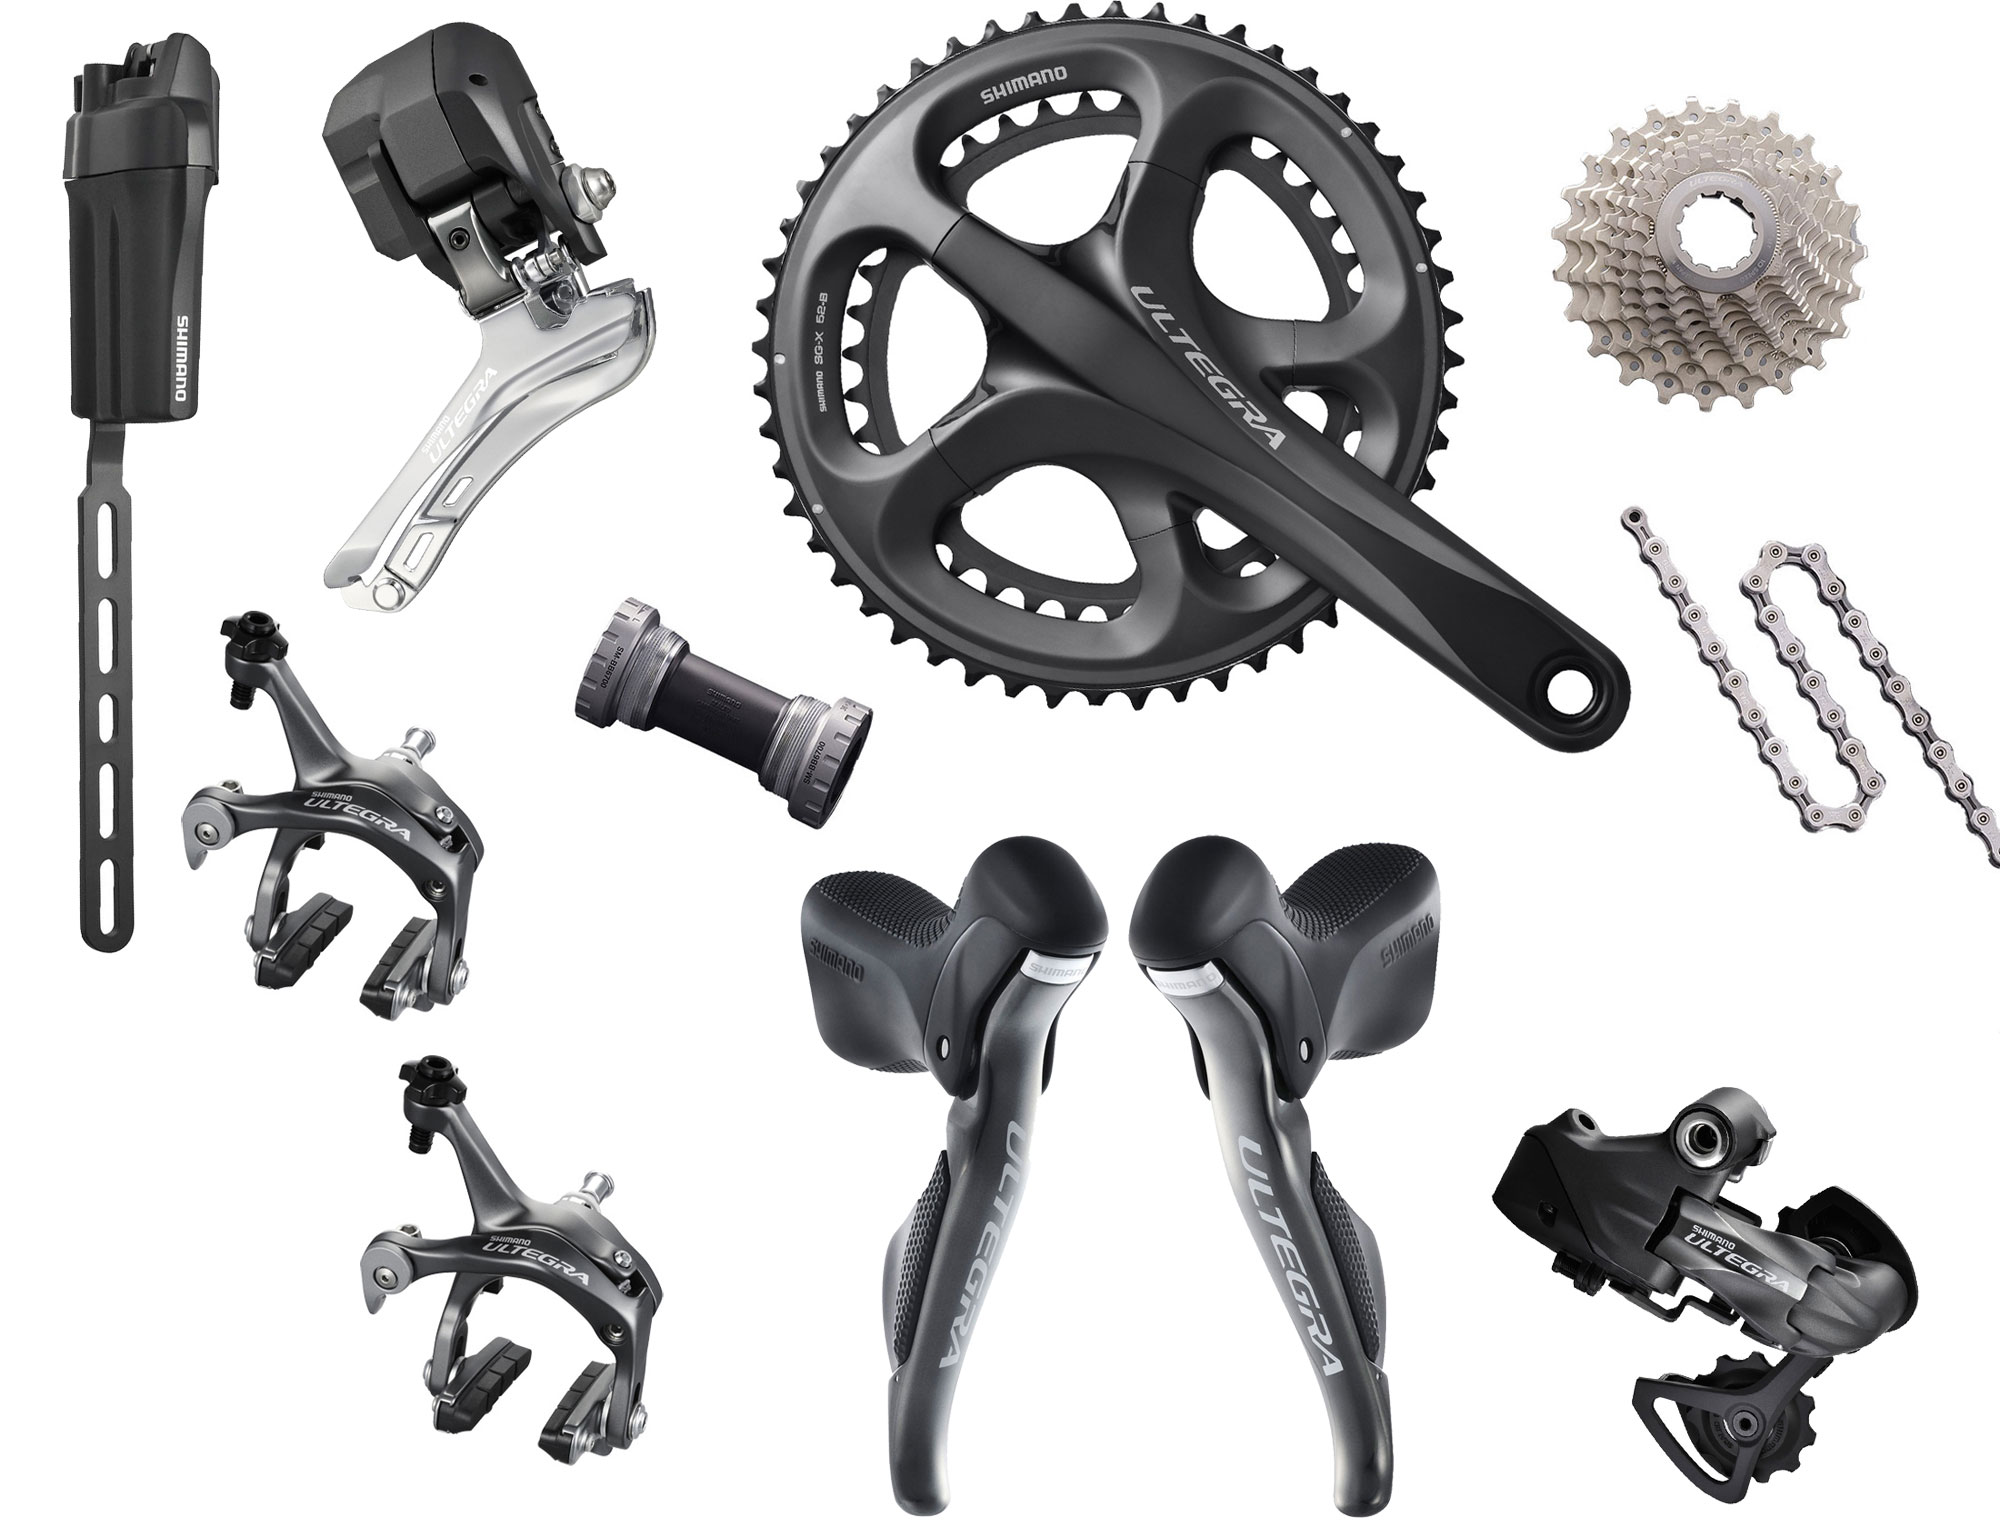 82d7af1d889 Shimano Ultegra Di2 Electronic Components Kit - Oliver's Cycle ...